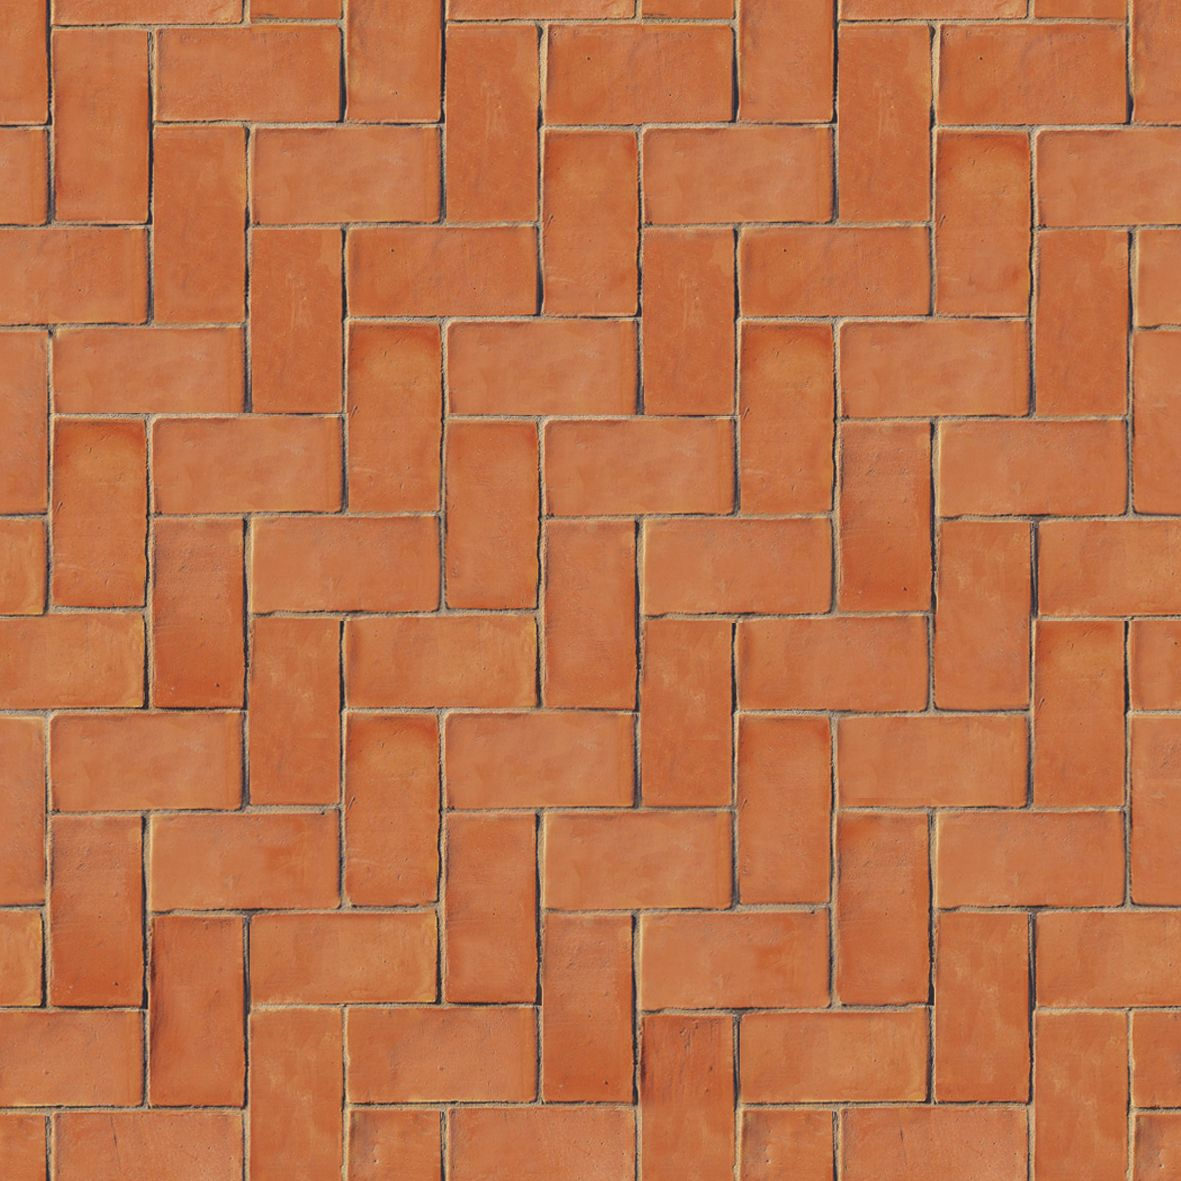 Terracotta floor tiles google search for the home pinterest terracotta floor tiles google search dailygadgetfo Images